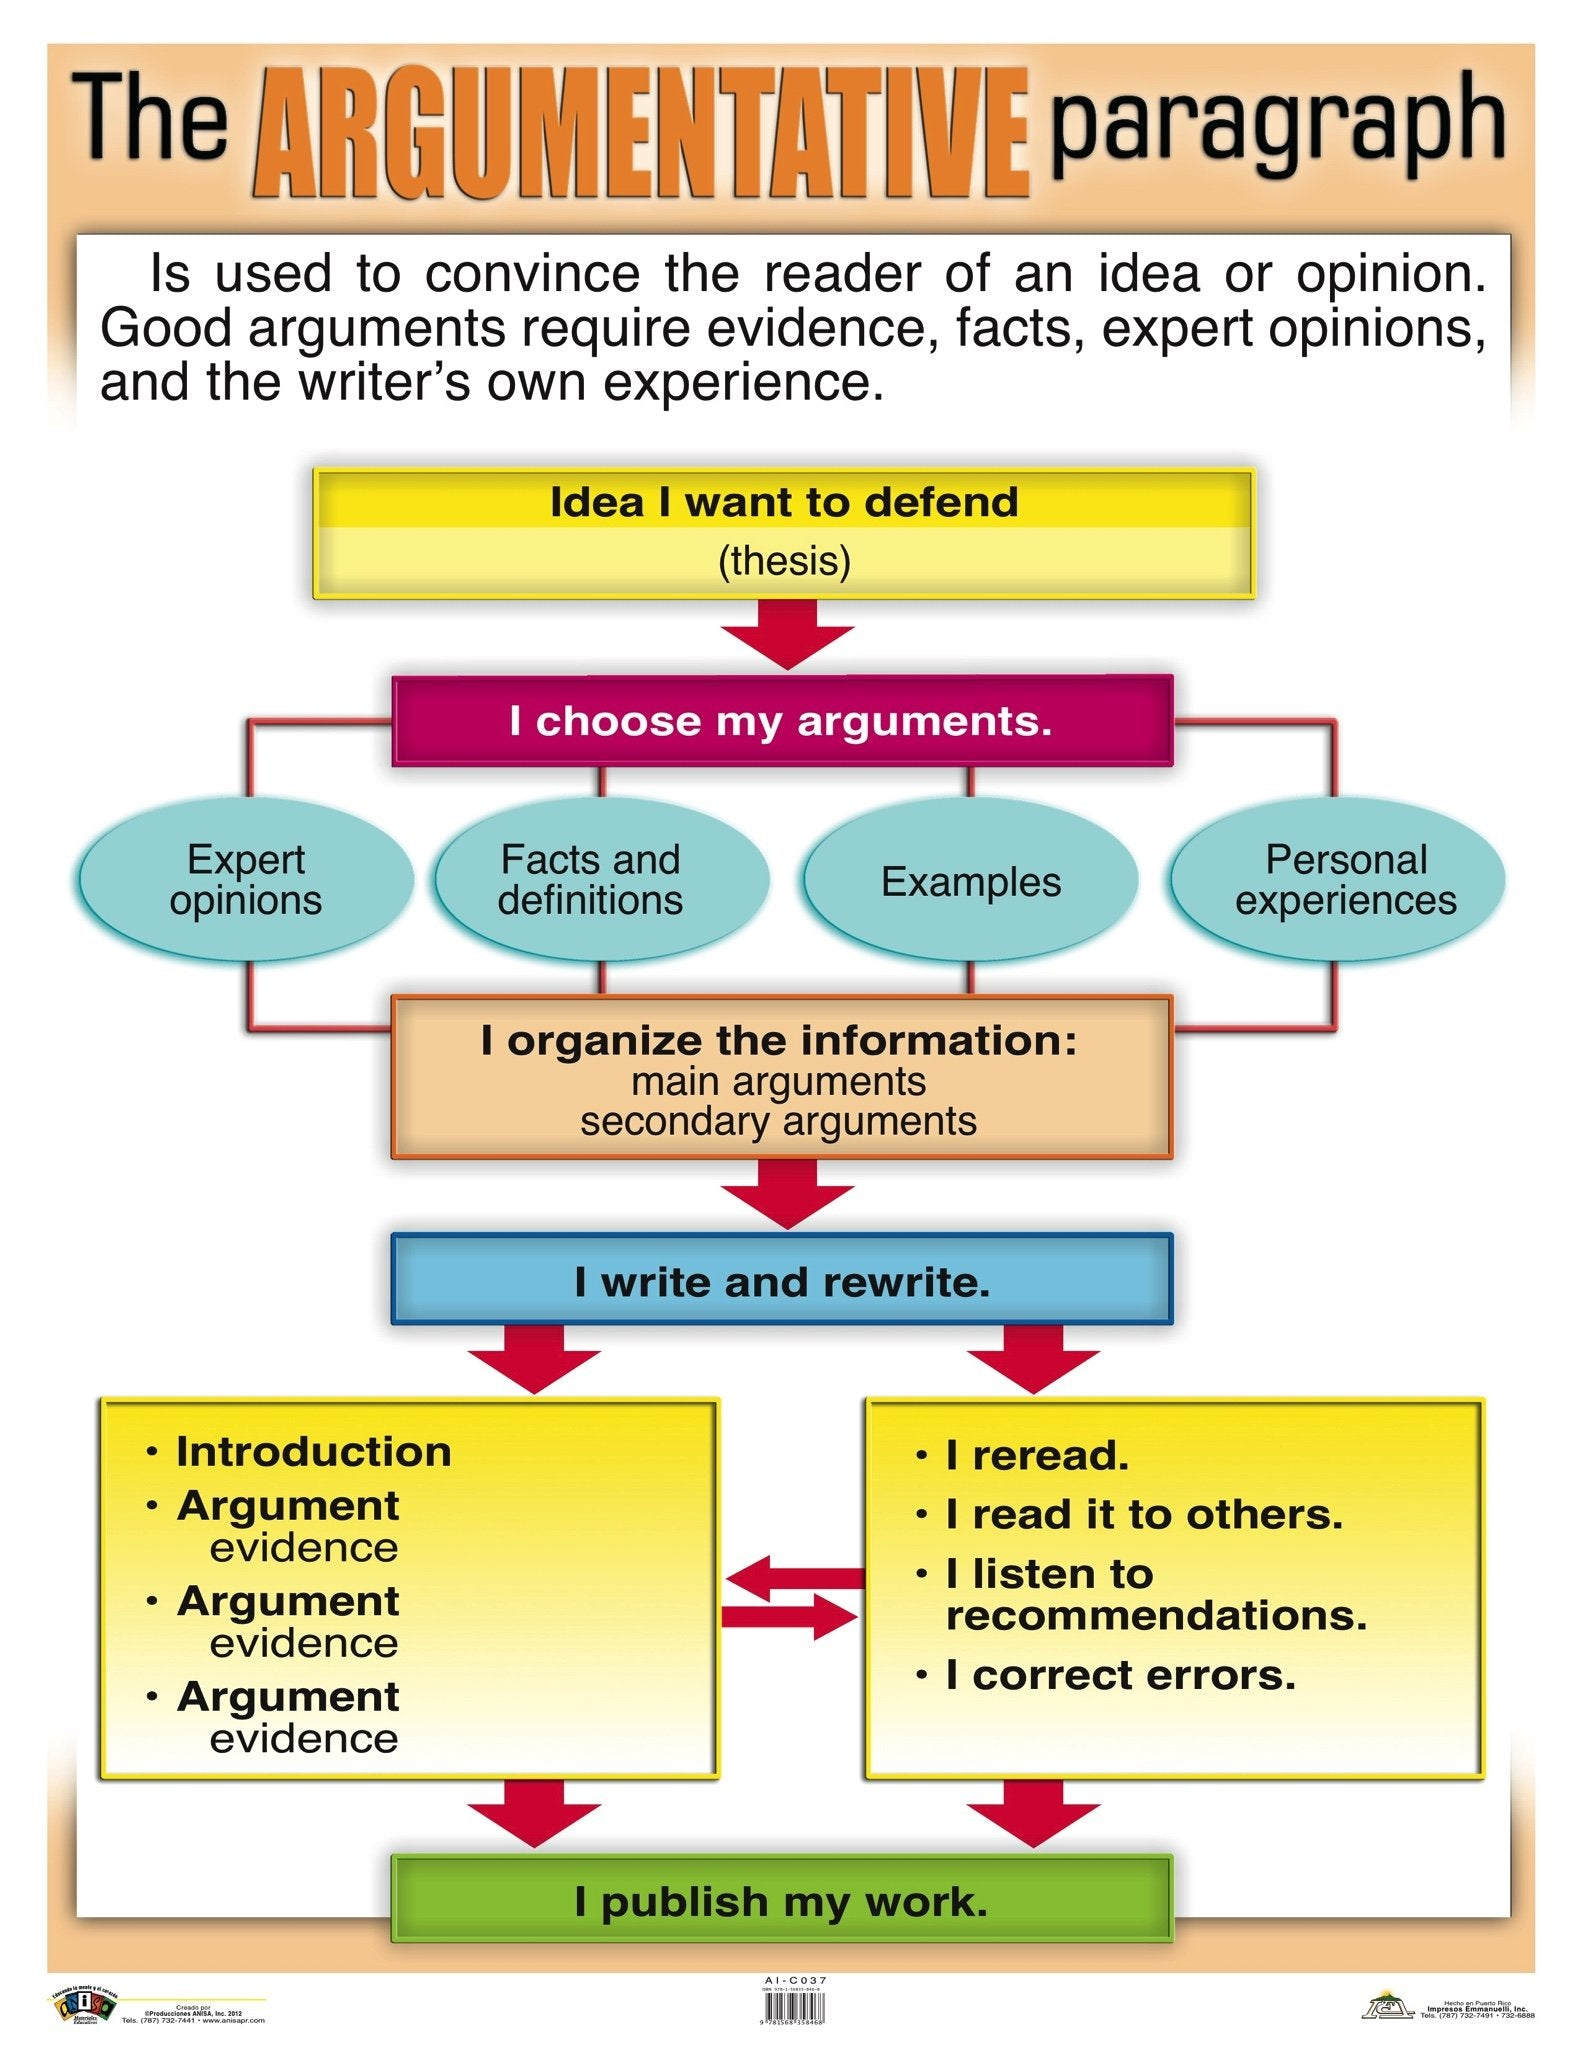 AI-C037 The Argumentative Paragraphs